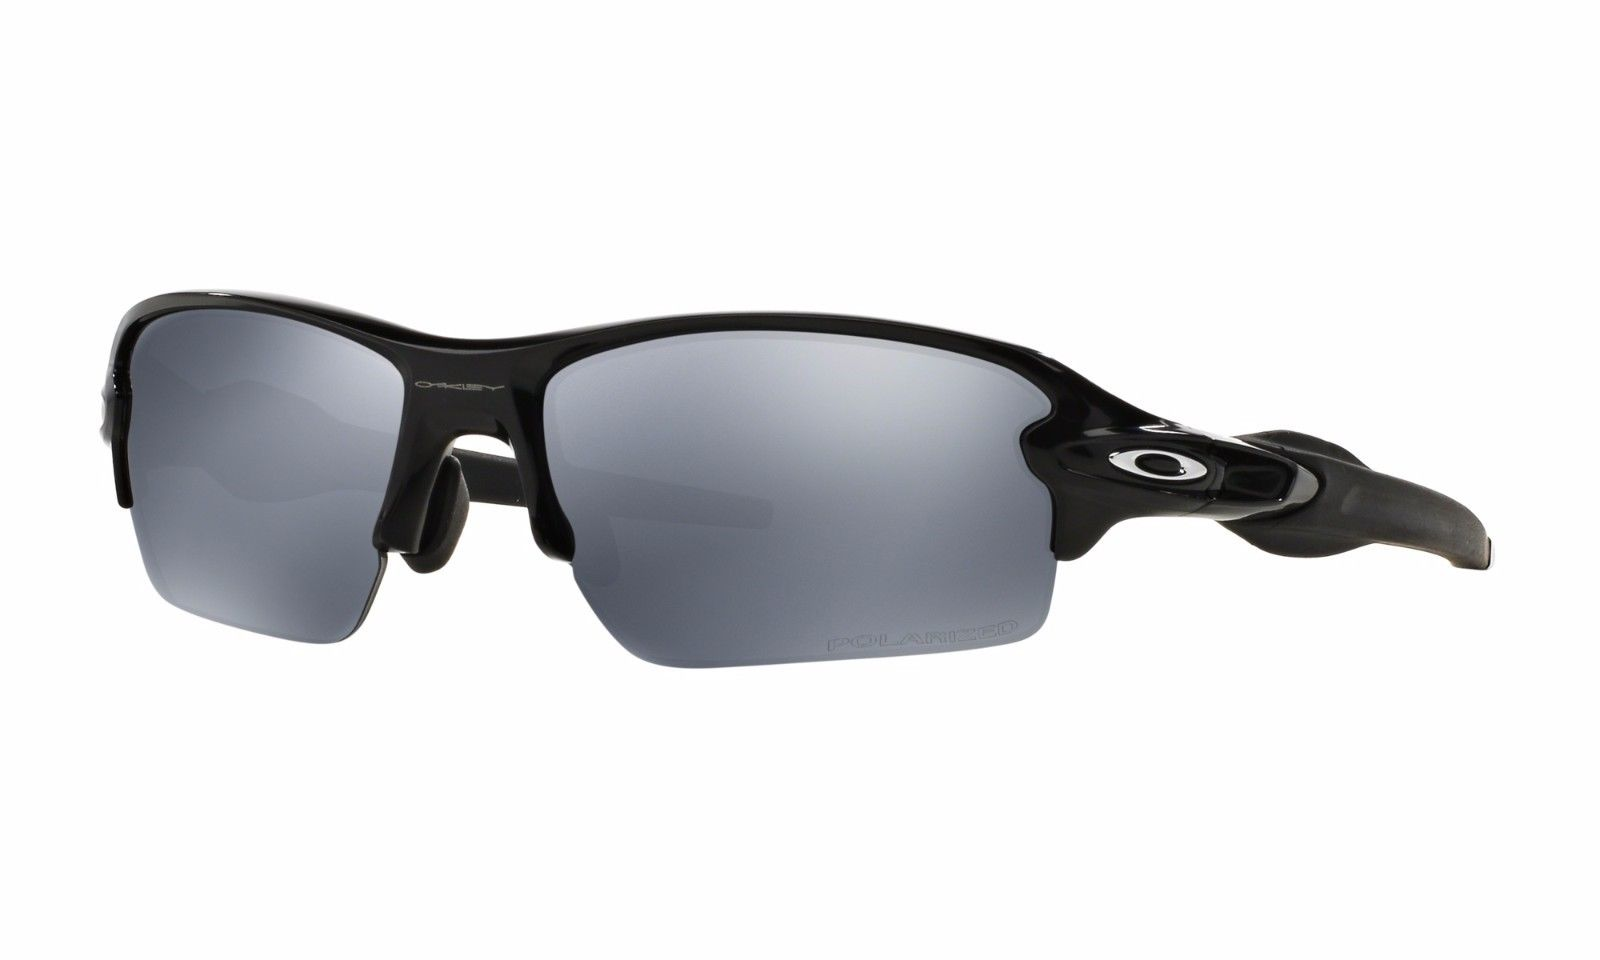 Oakley Polarized Flak 2.0 Black Sunglasses (OO9271-07)